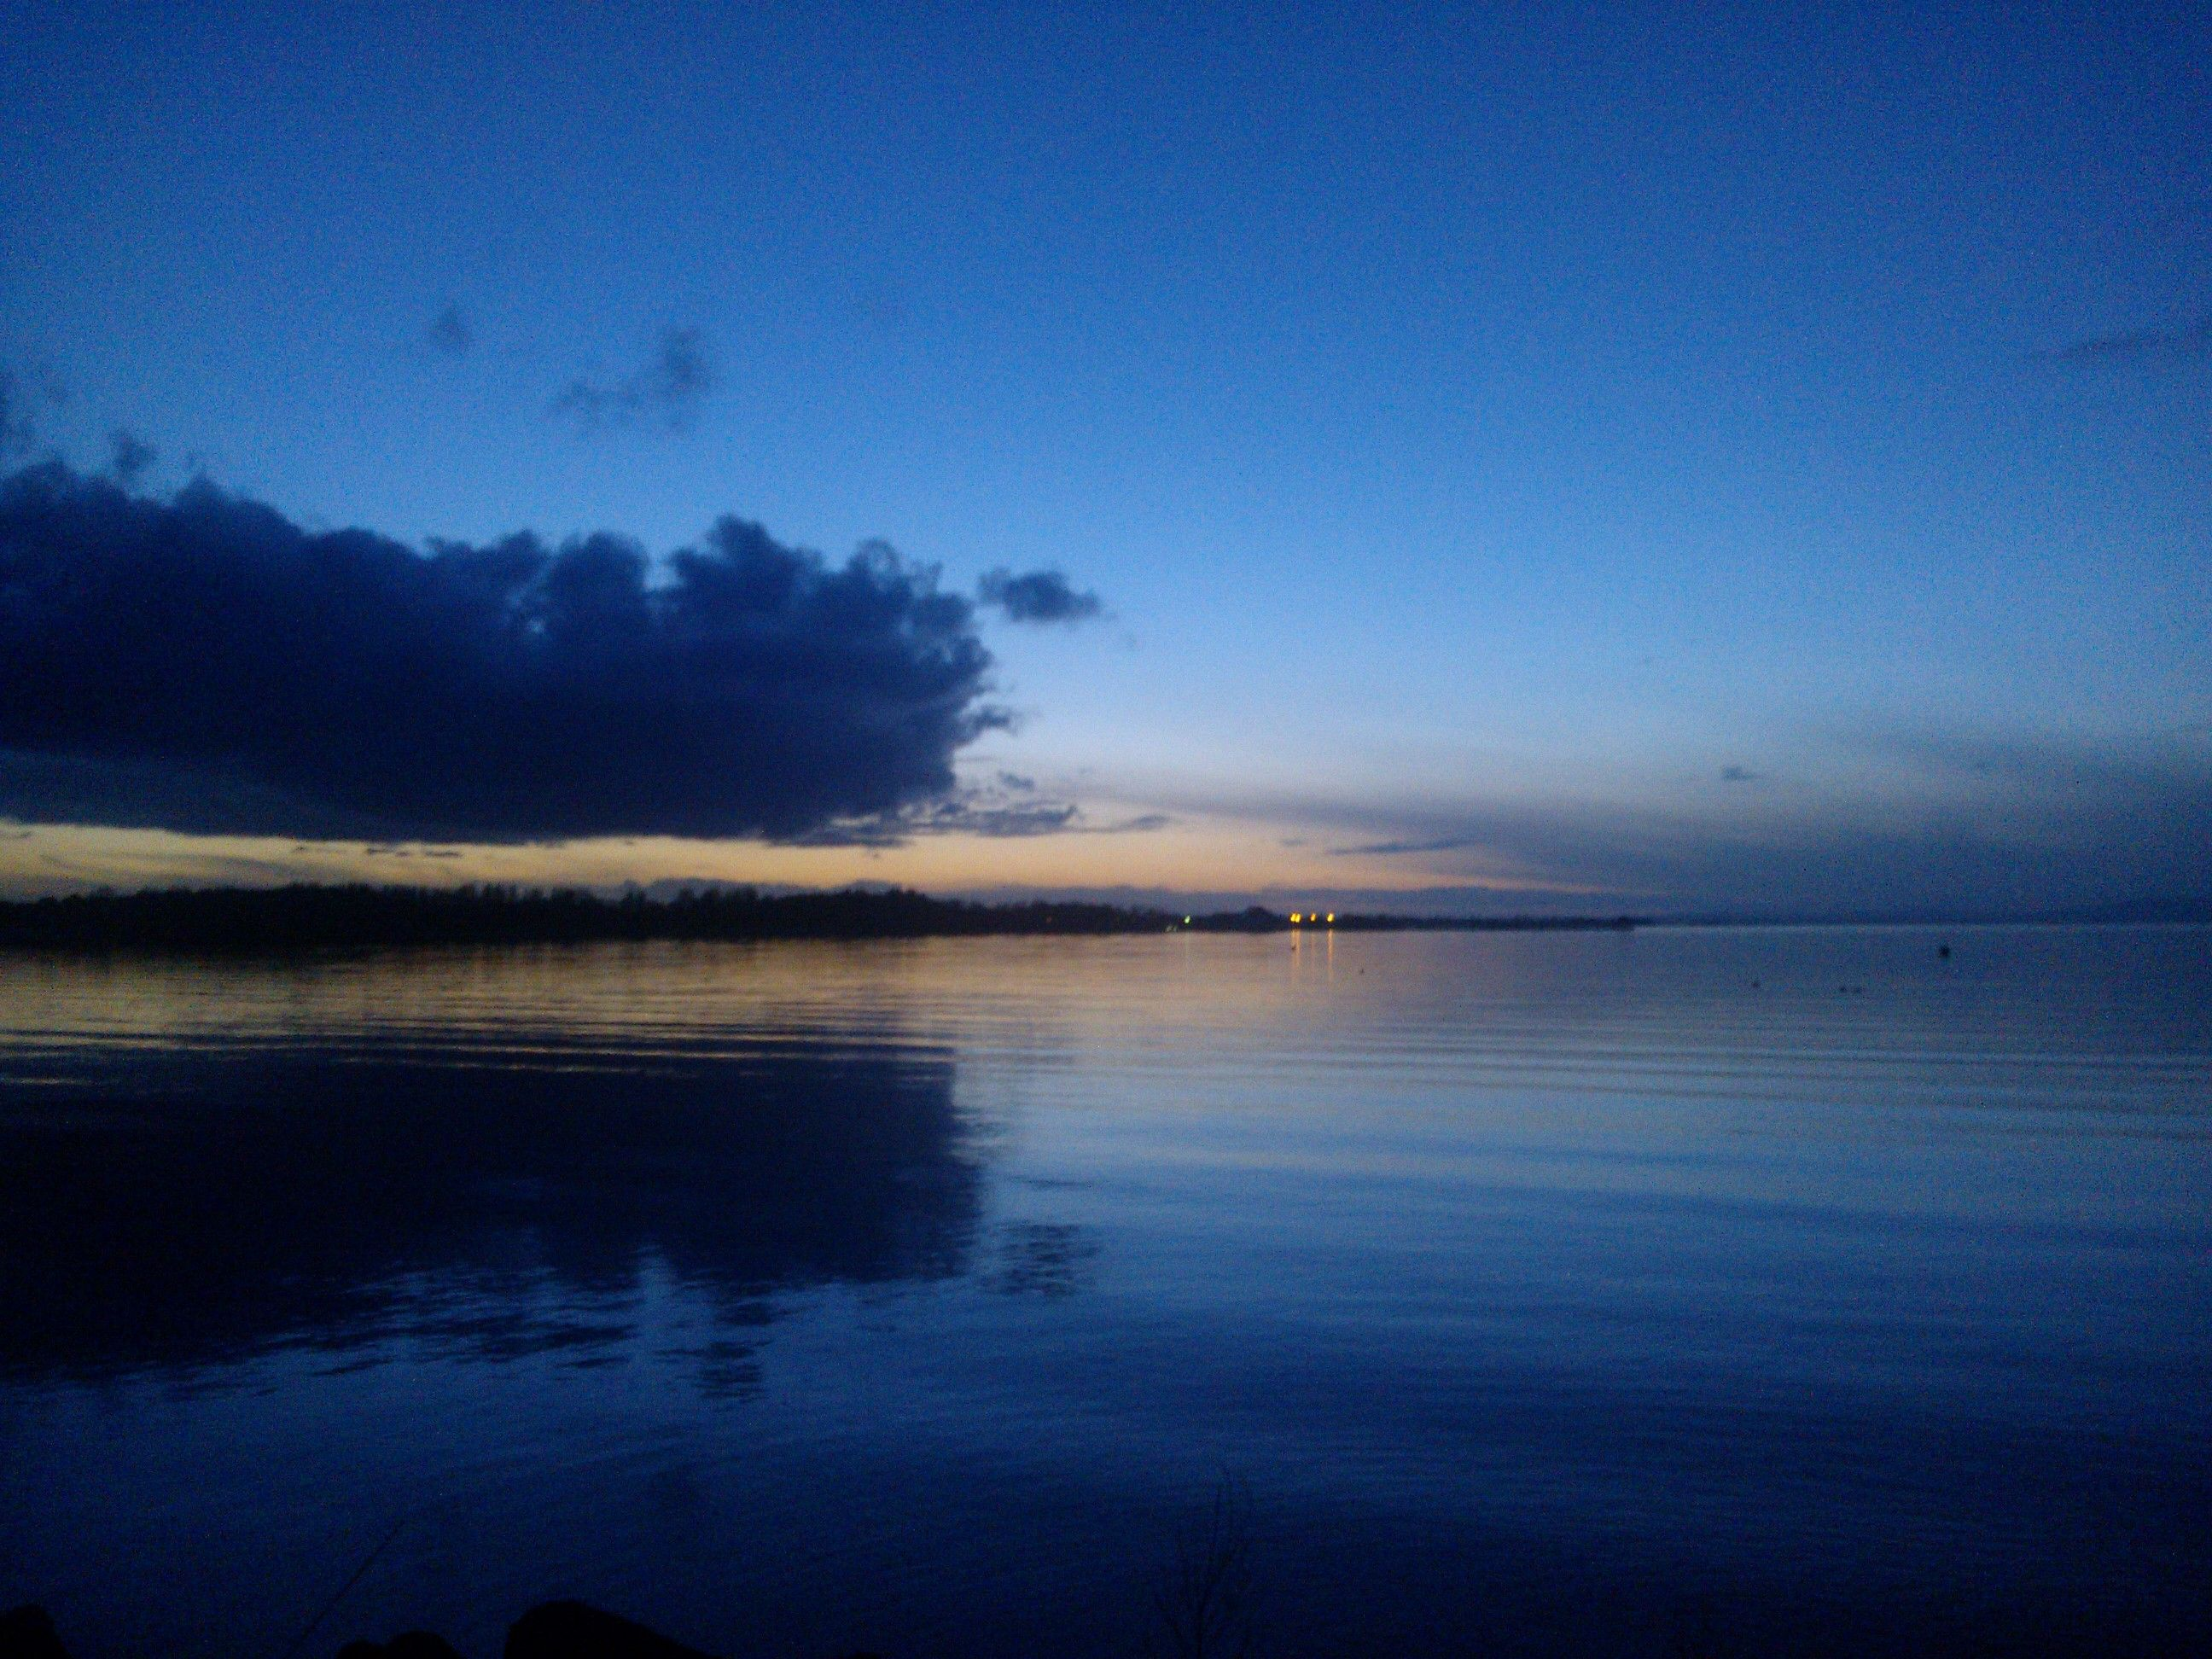 out for a walk along the shores of lough neagh last night